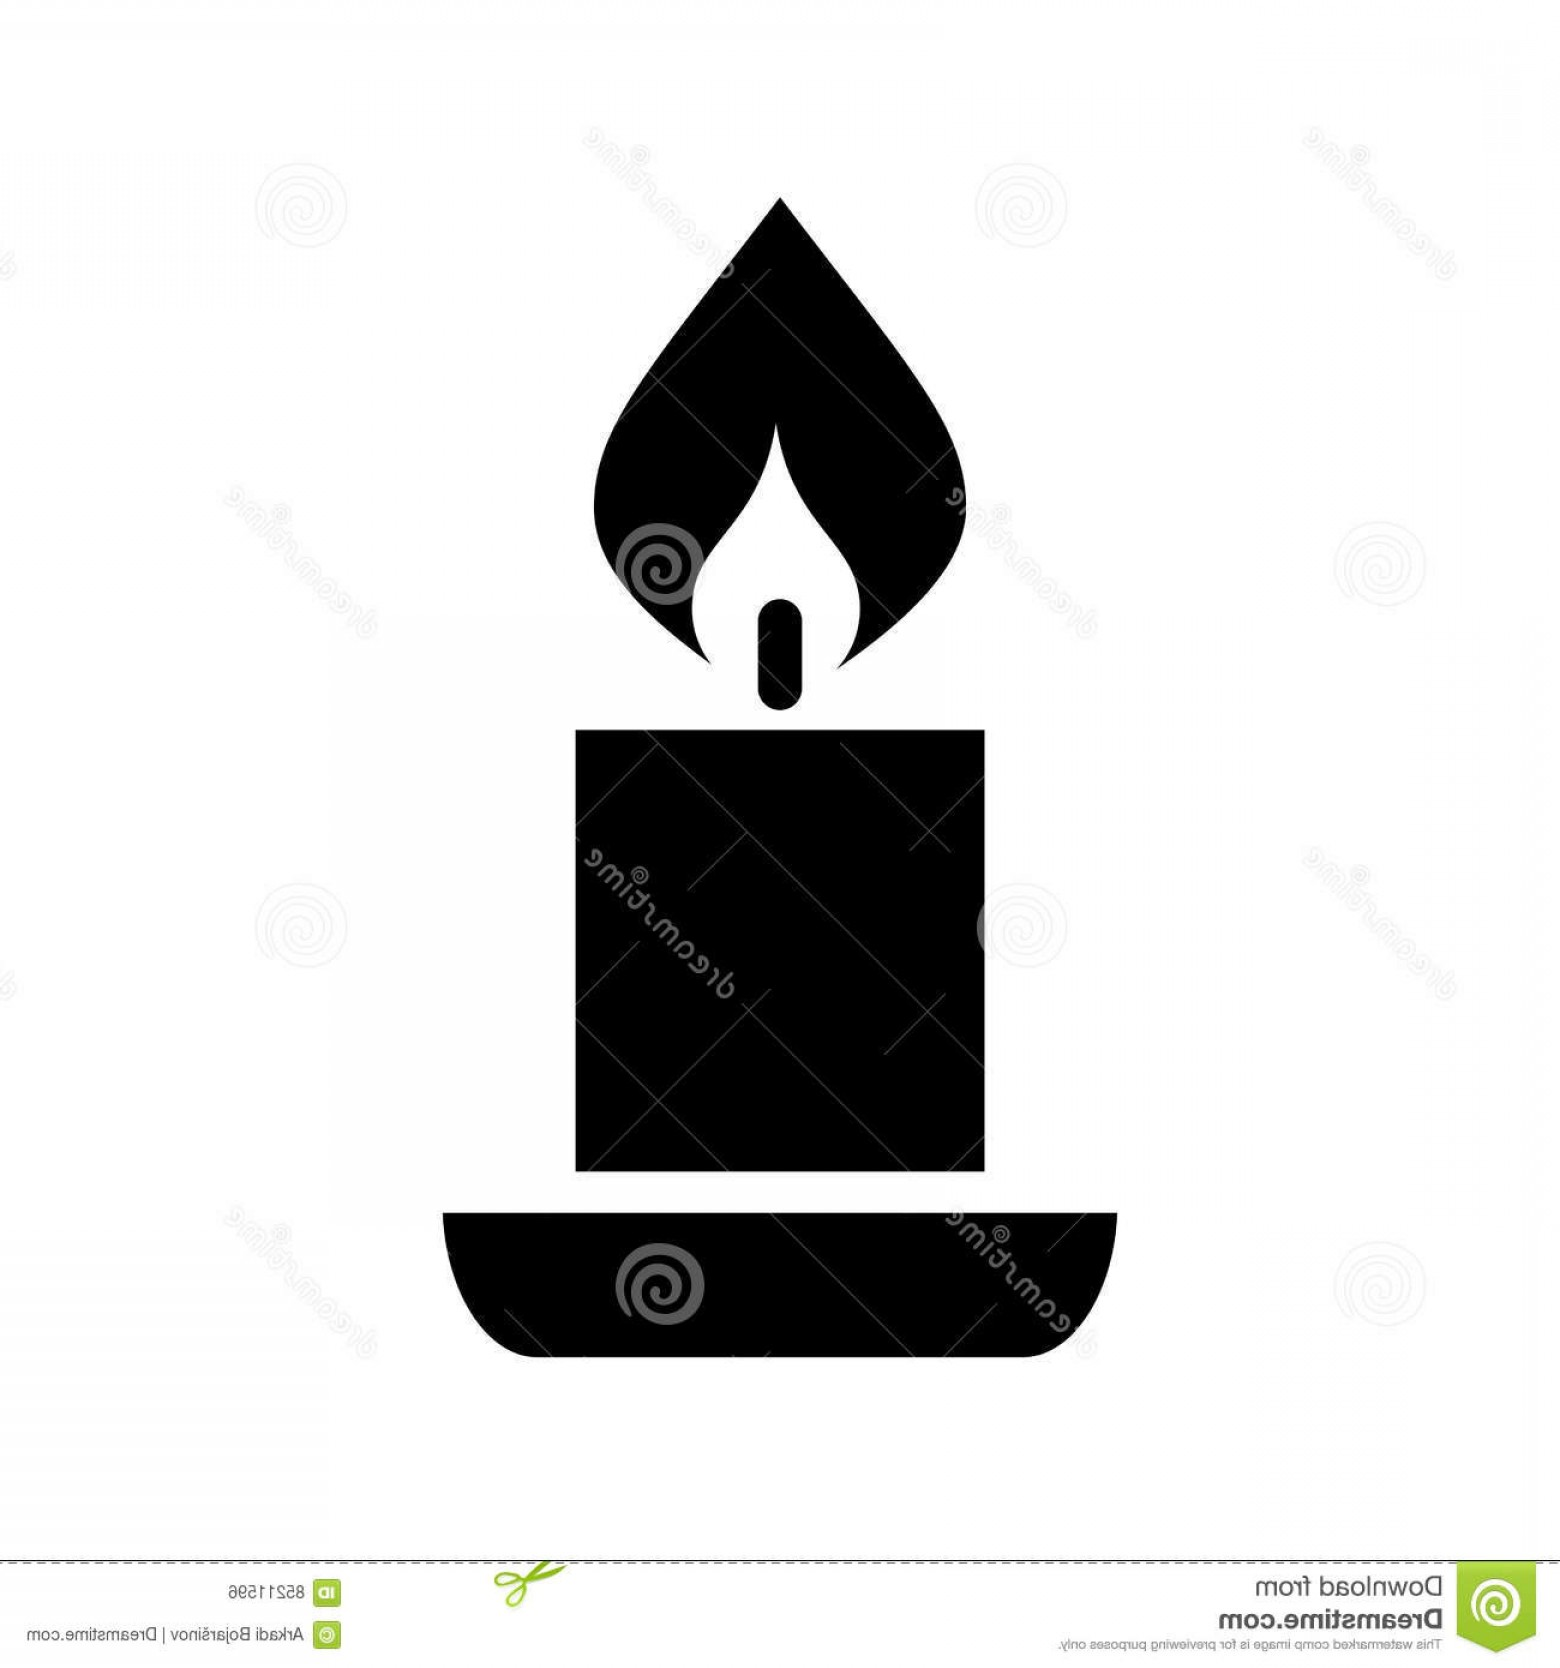 Candle Vector Black: Stock Illustration Candle Vector Silhouette Icon Isolated White Background Image